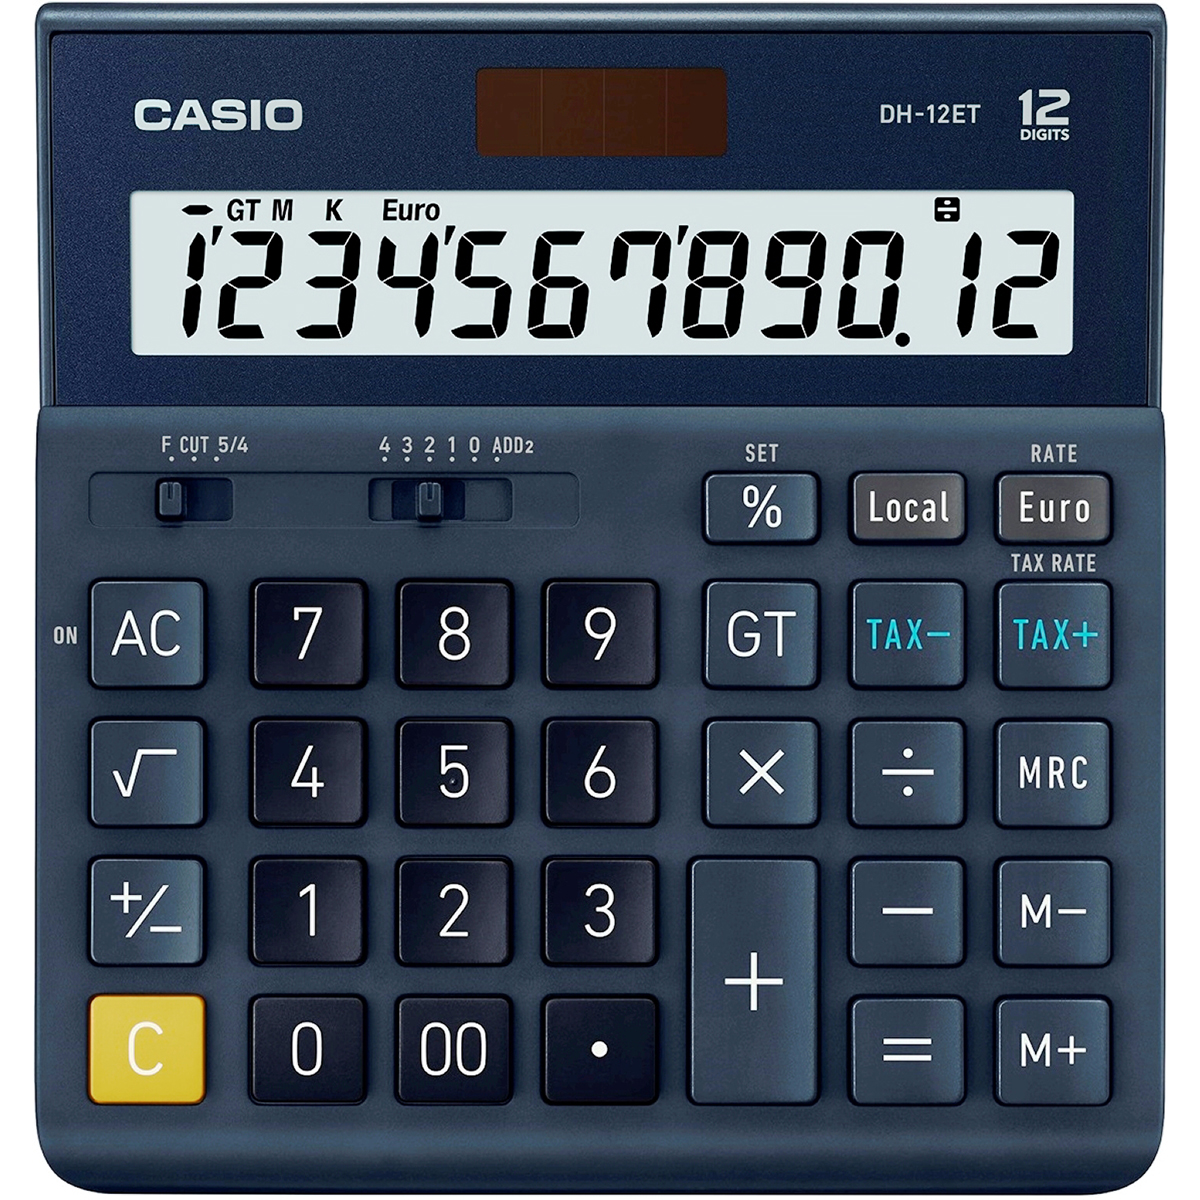 Casio DH-12ET 12 Digit Desktop Calculator